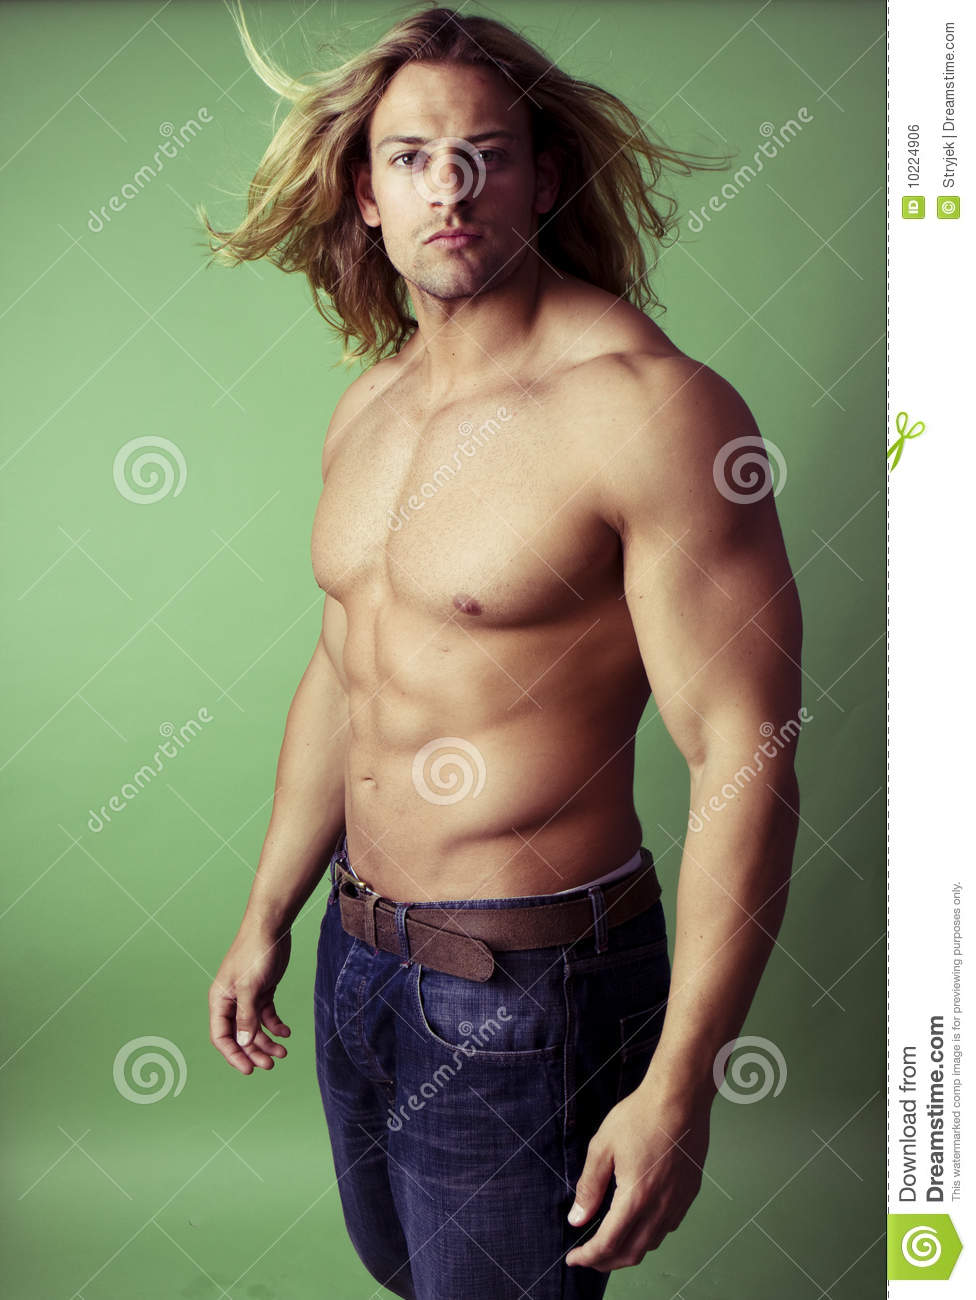 Athletic male body builder